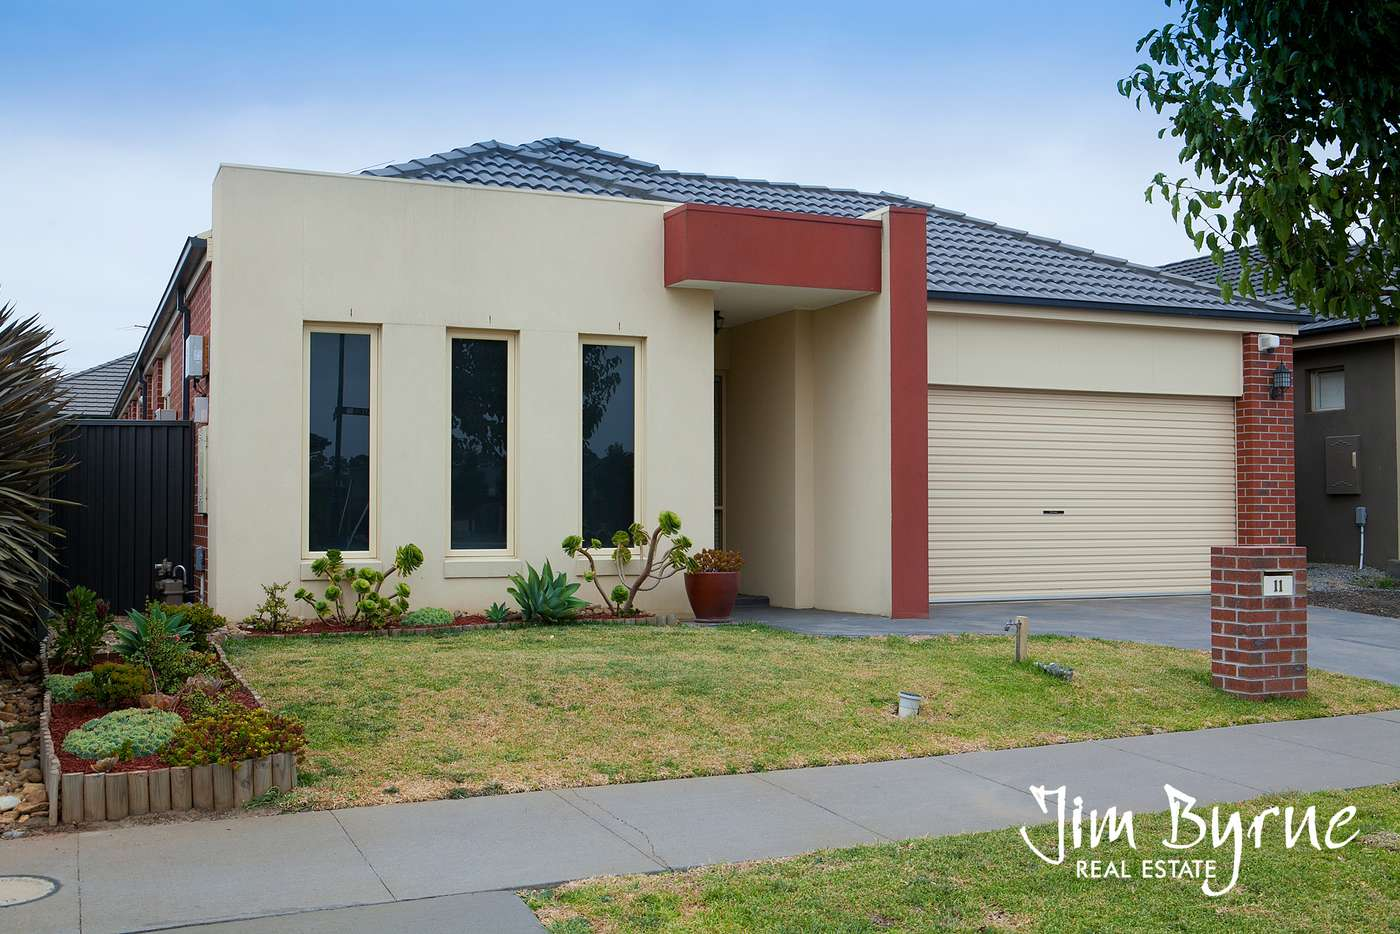 Main view of Homely house listing, 11 Platt Close, Pakenham VIC 3810